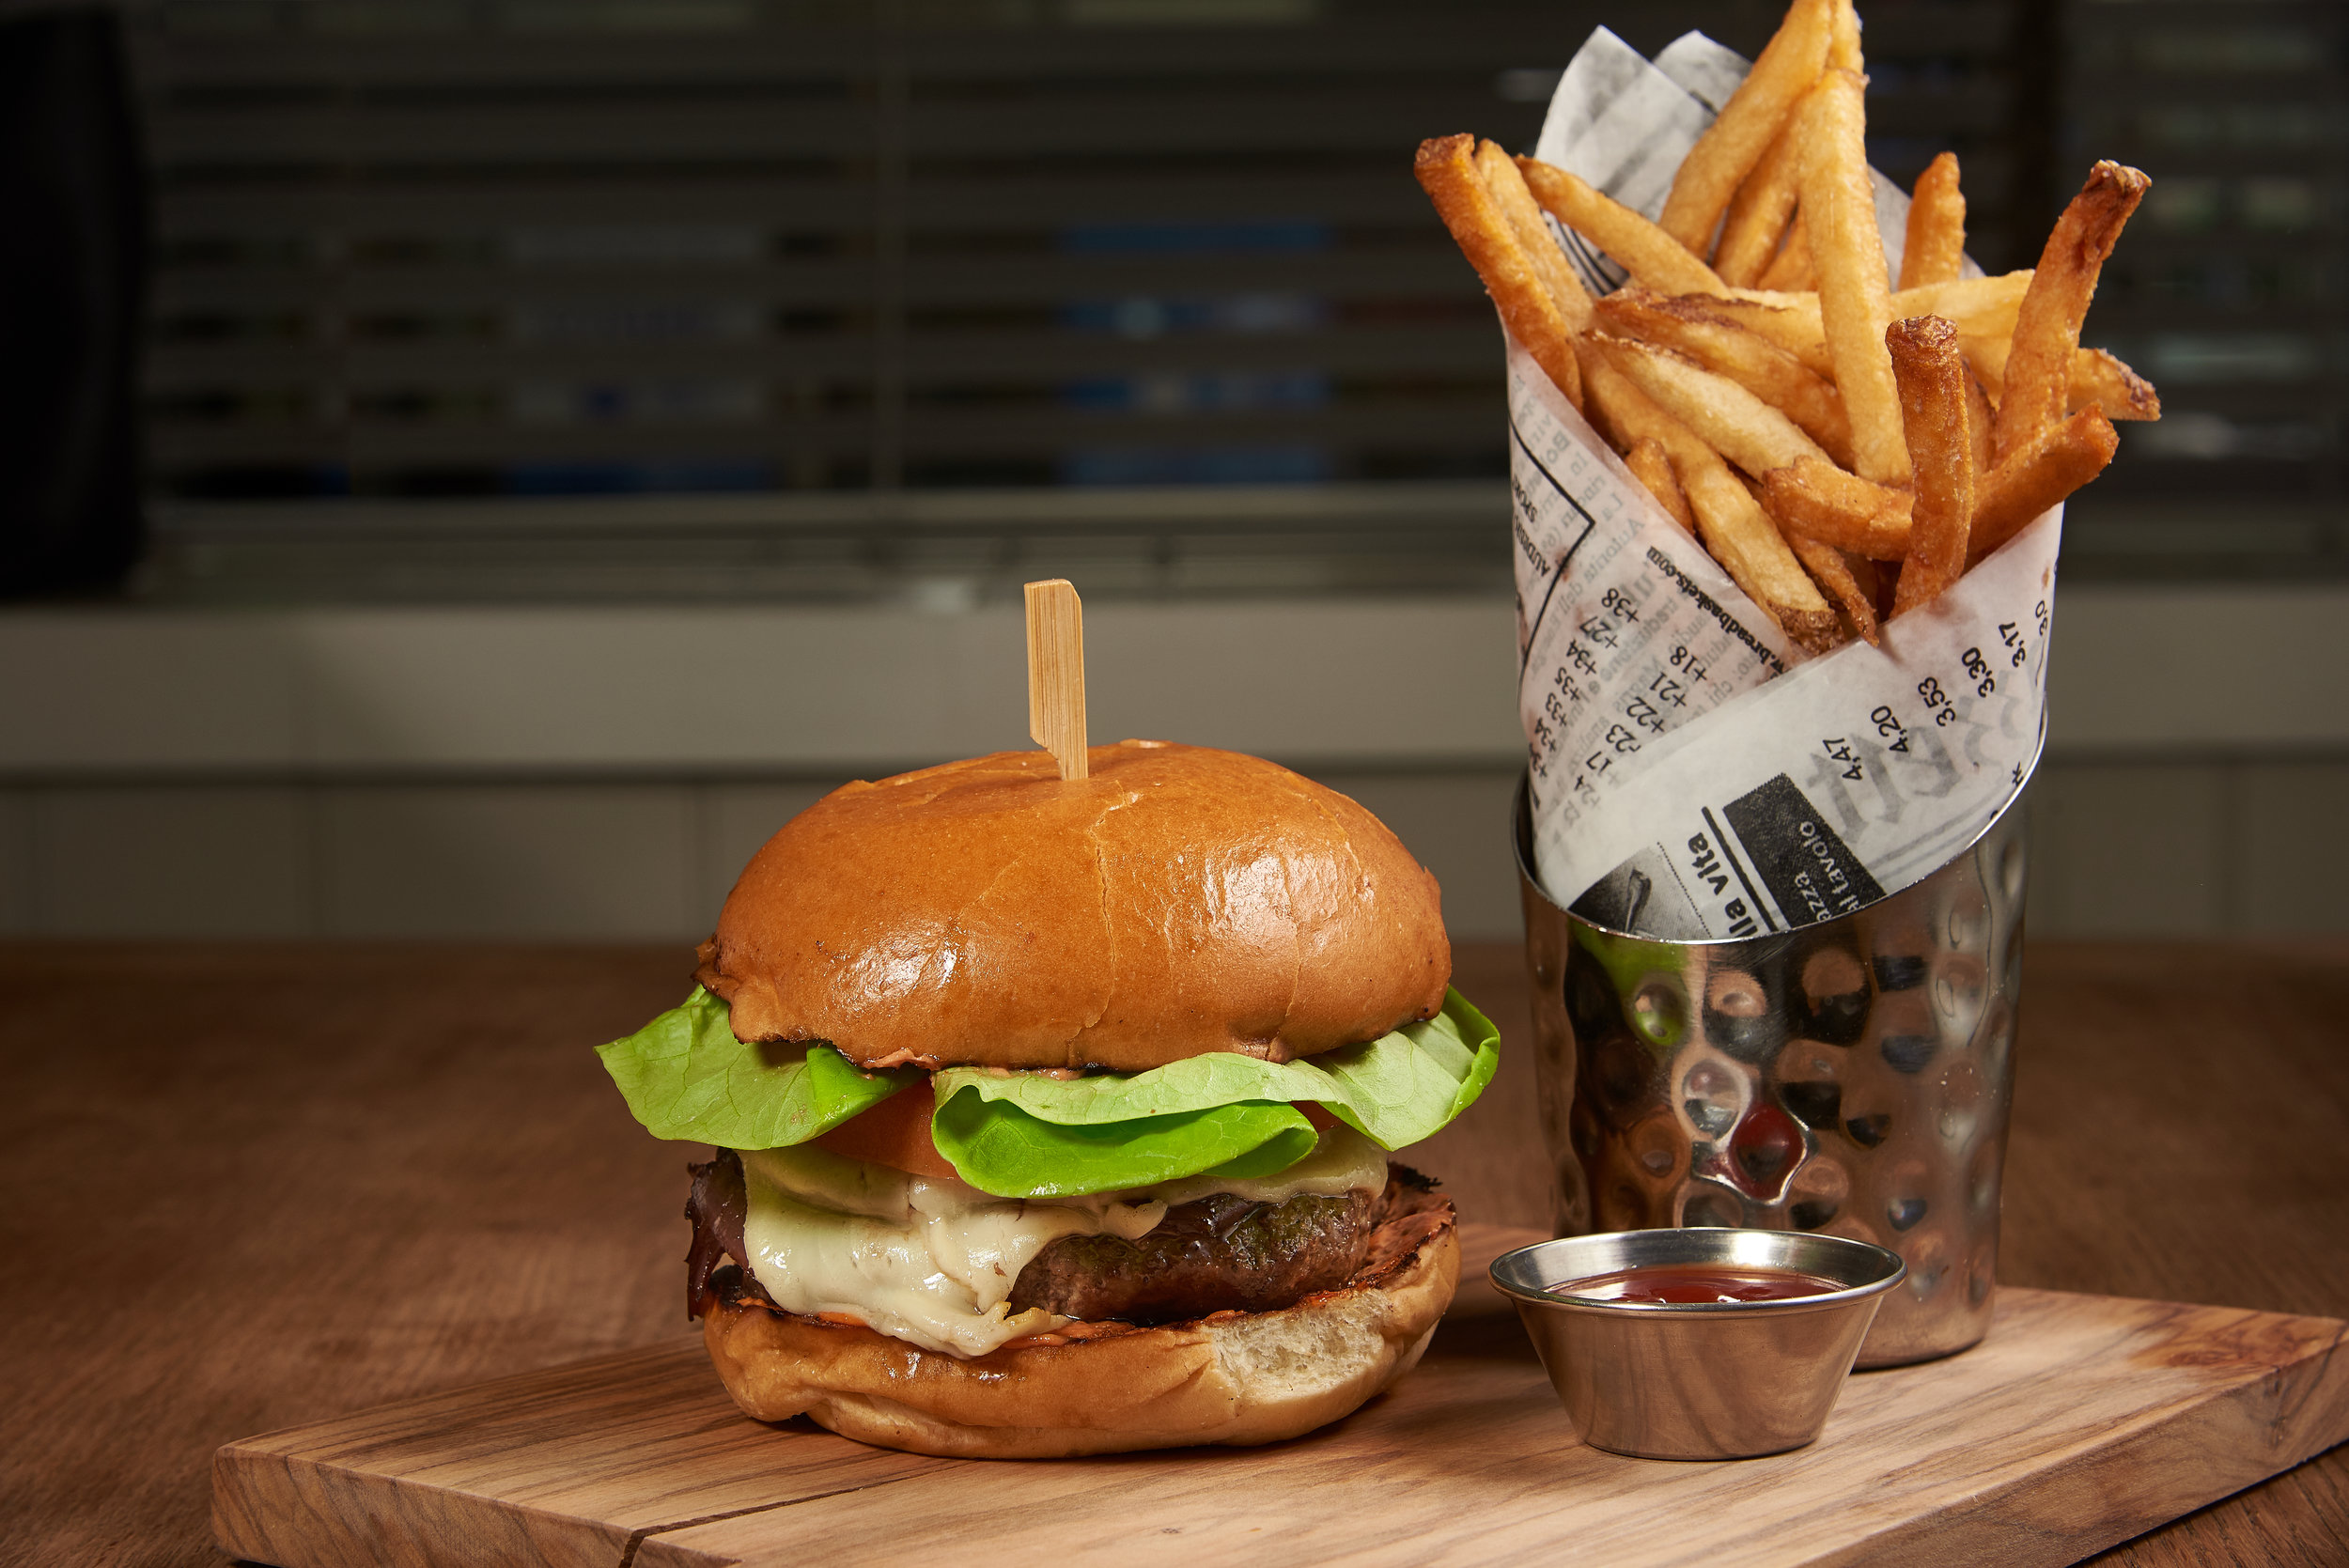 Professional food photo of a juicy cheese burger with french fries. Commercial photography